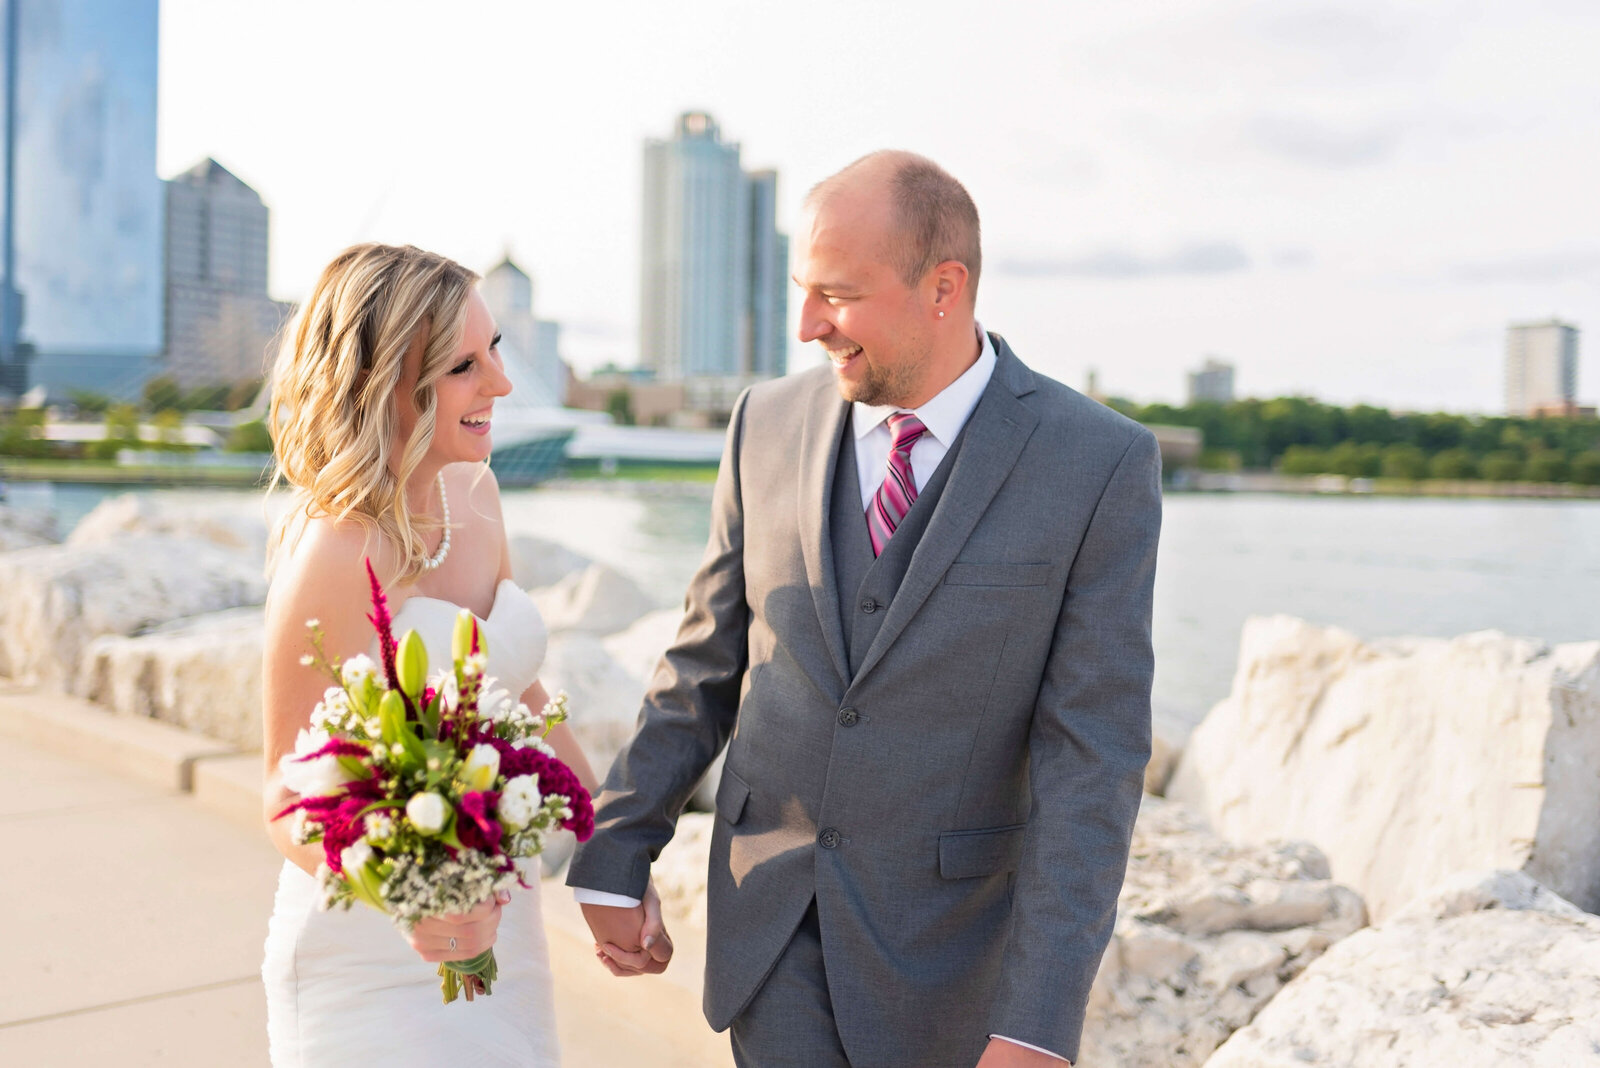 Wedding-Photographer-Discovery-World-Milwaukee-Wisconsin-56